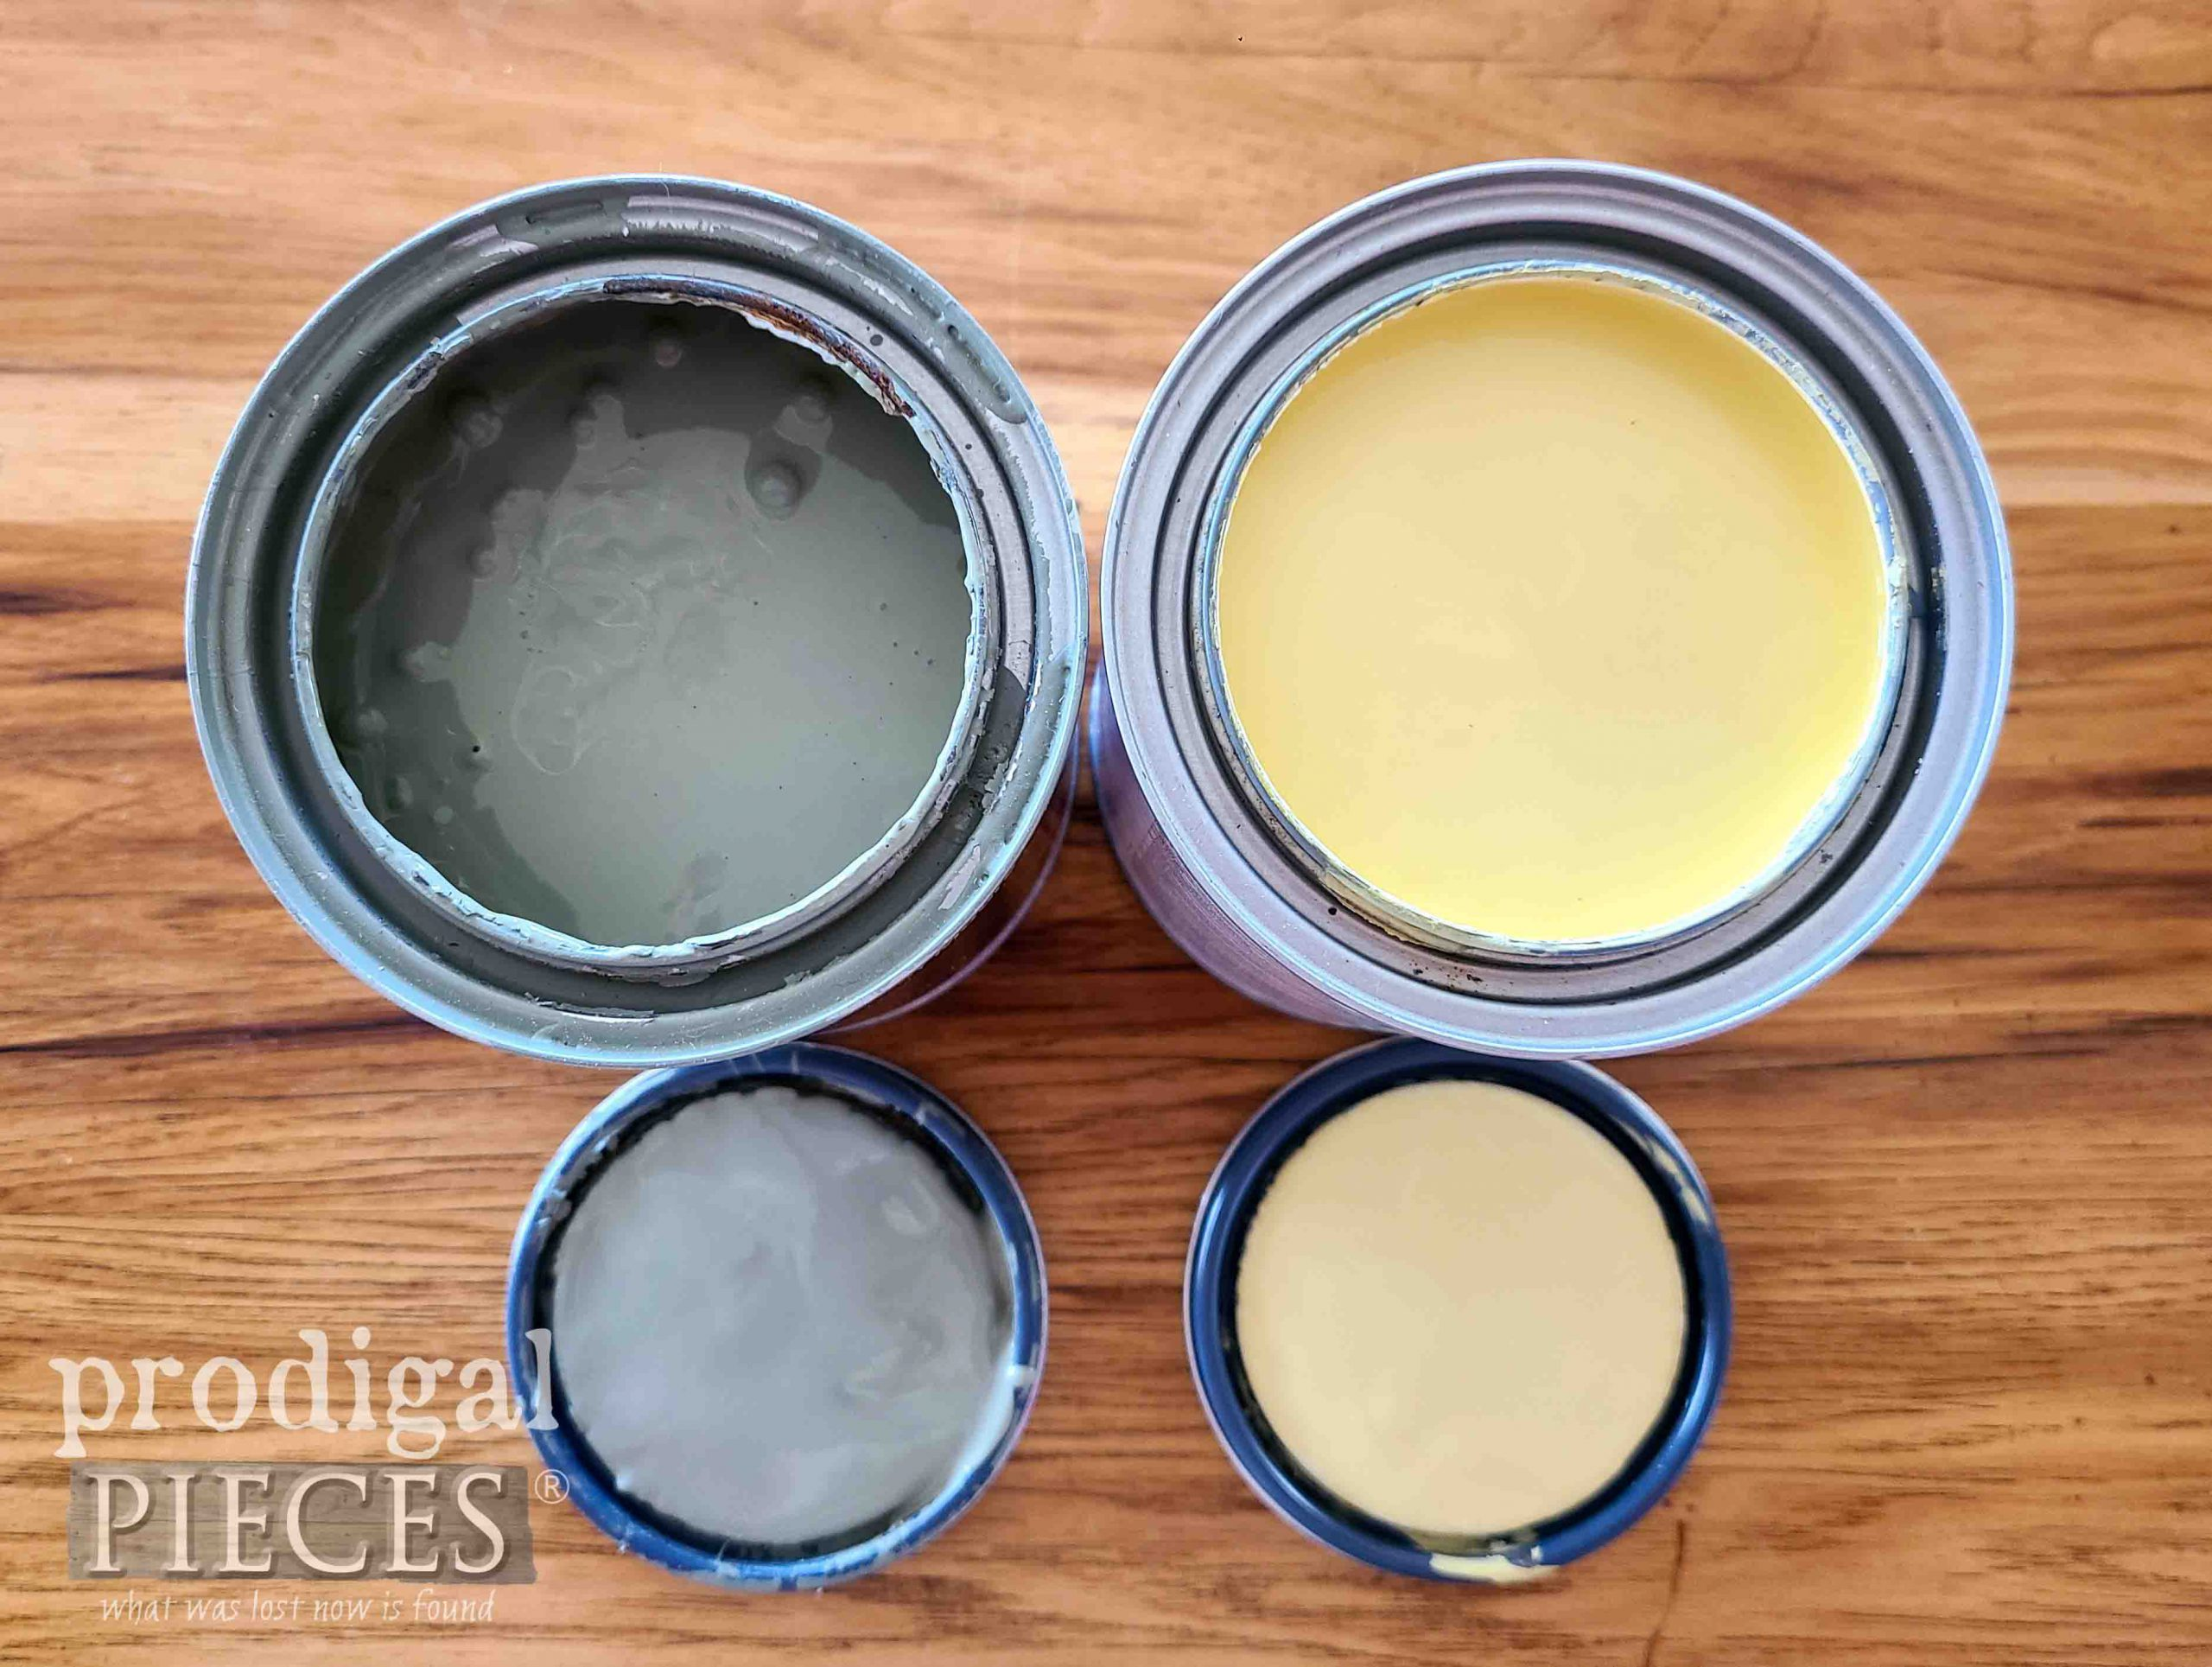 Soft Spring Paint Colors for Repurposed Silverware Boxes by Larissa of Prodigal Pieces | prodigalpieces.com #prodigalpieces